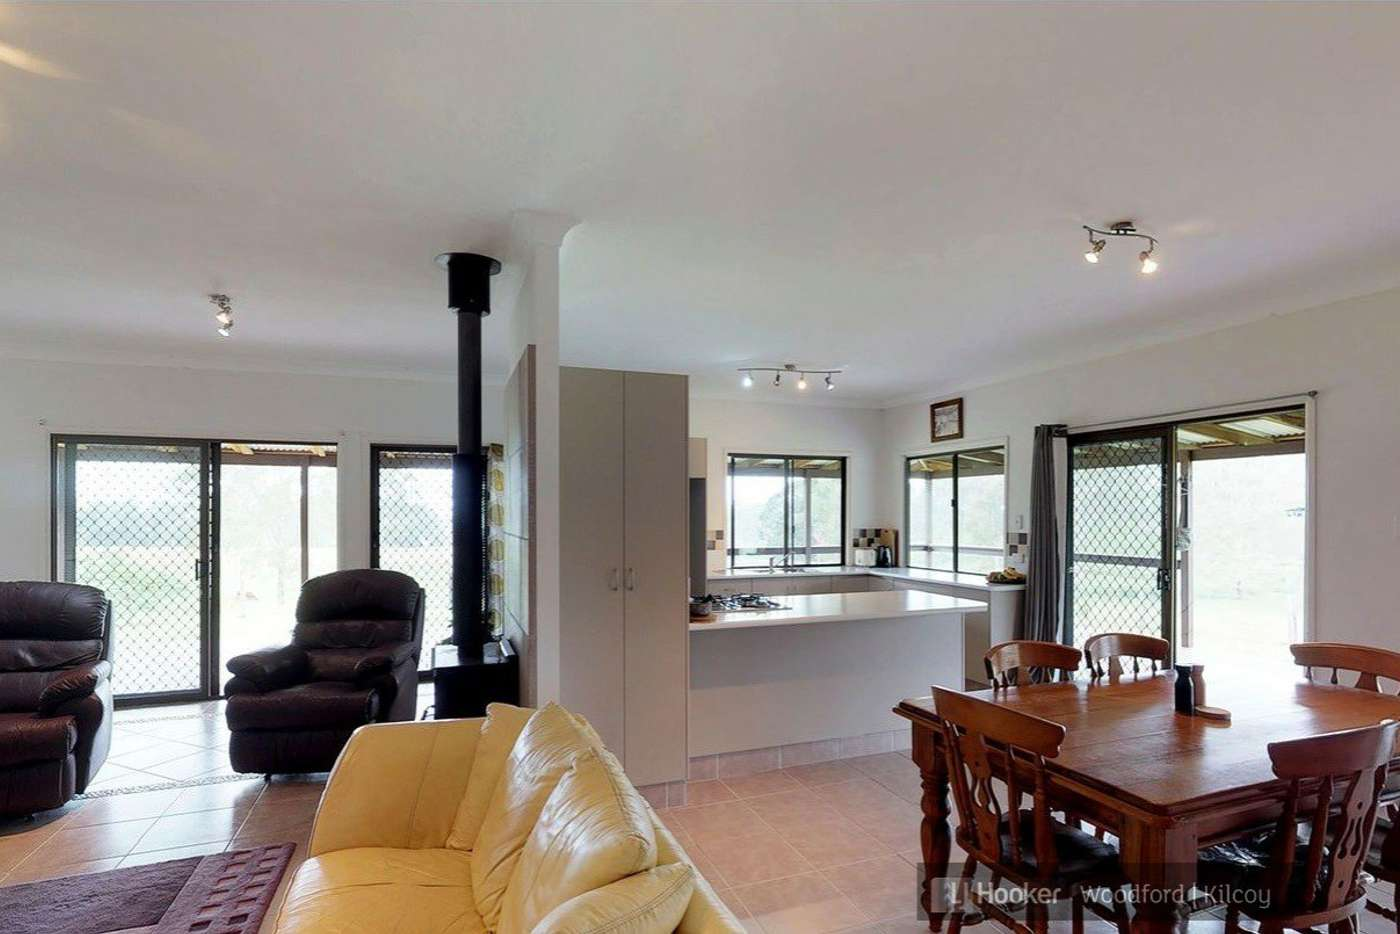 Seventh view of Homely house listing, 86-312 Batchelor Road, Woodford QLD 4514